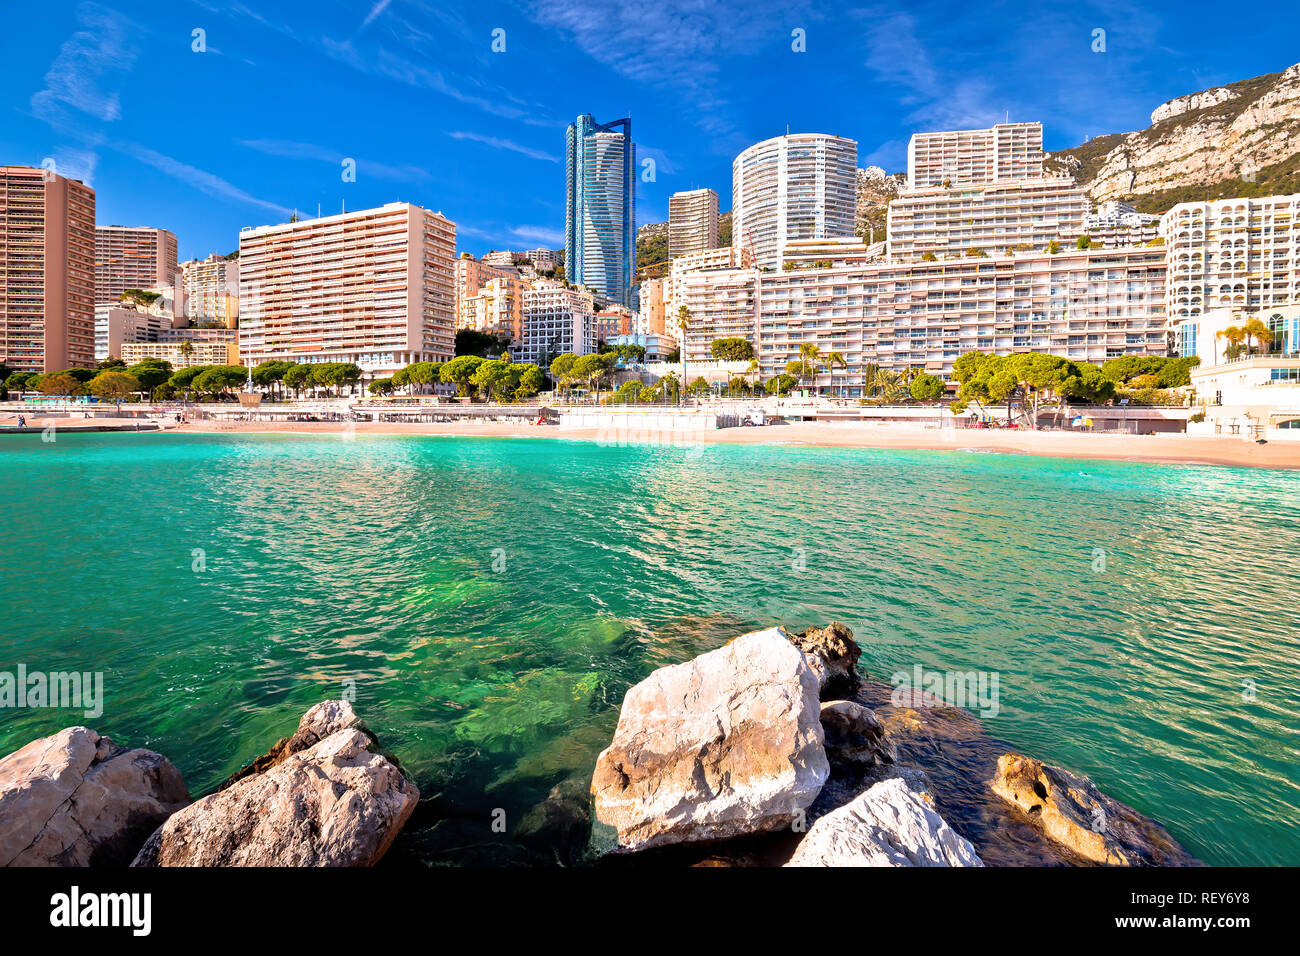 Les Plages skyline and emerald beach view, Principality of Monaco - Stock Image